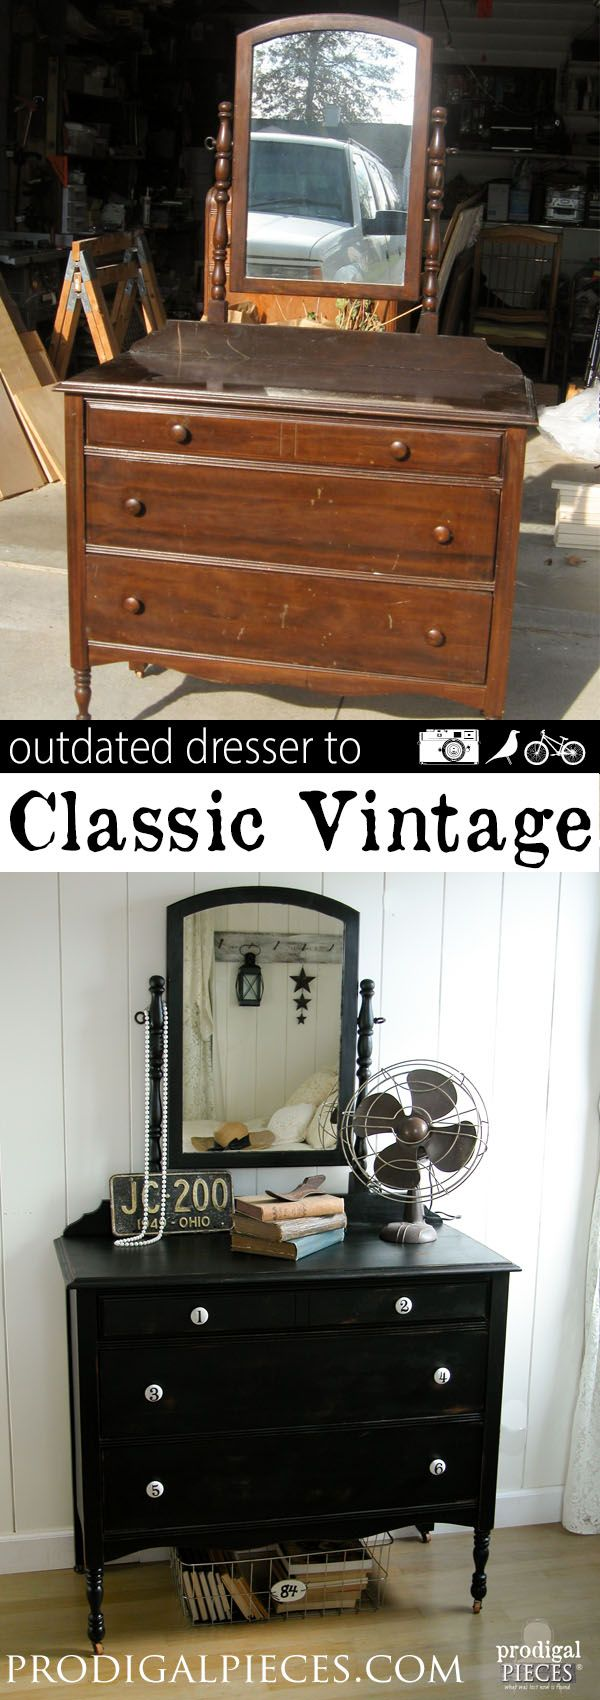 An outdated dresser just needs a little TLC and new look to get it back to the c...